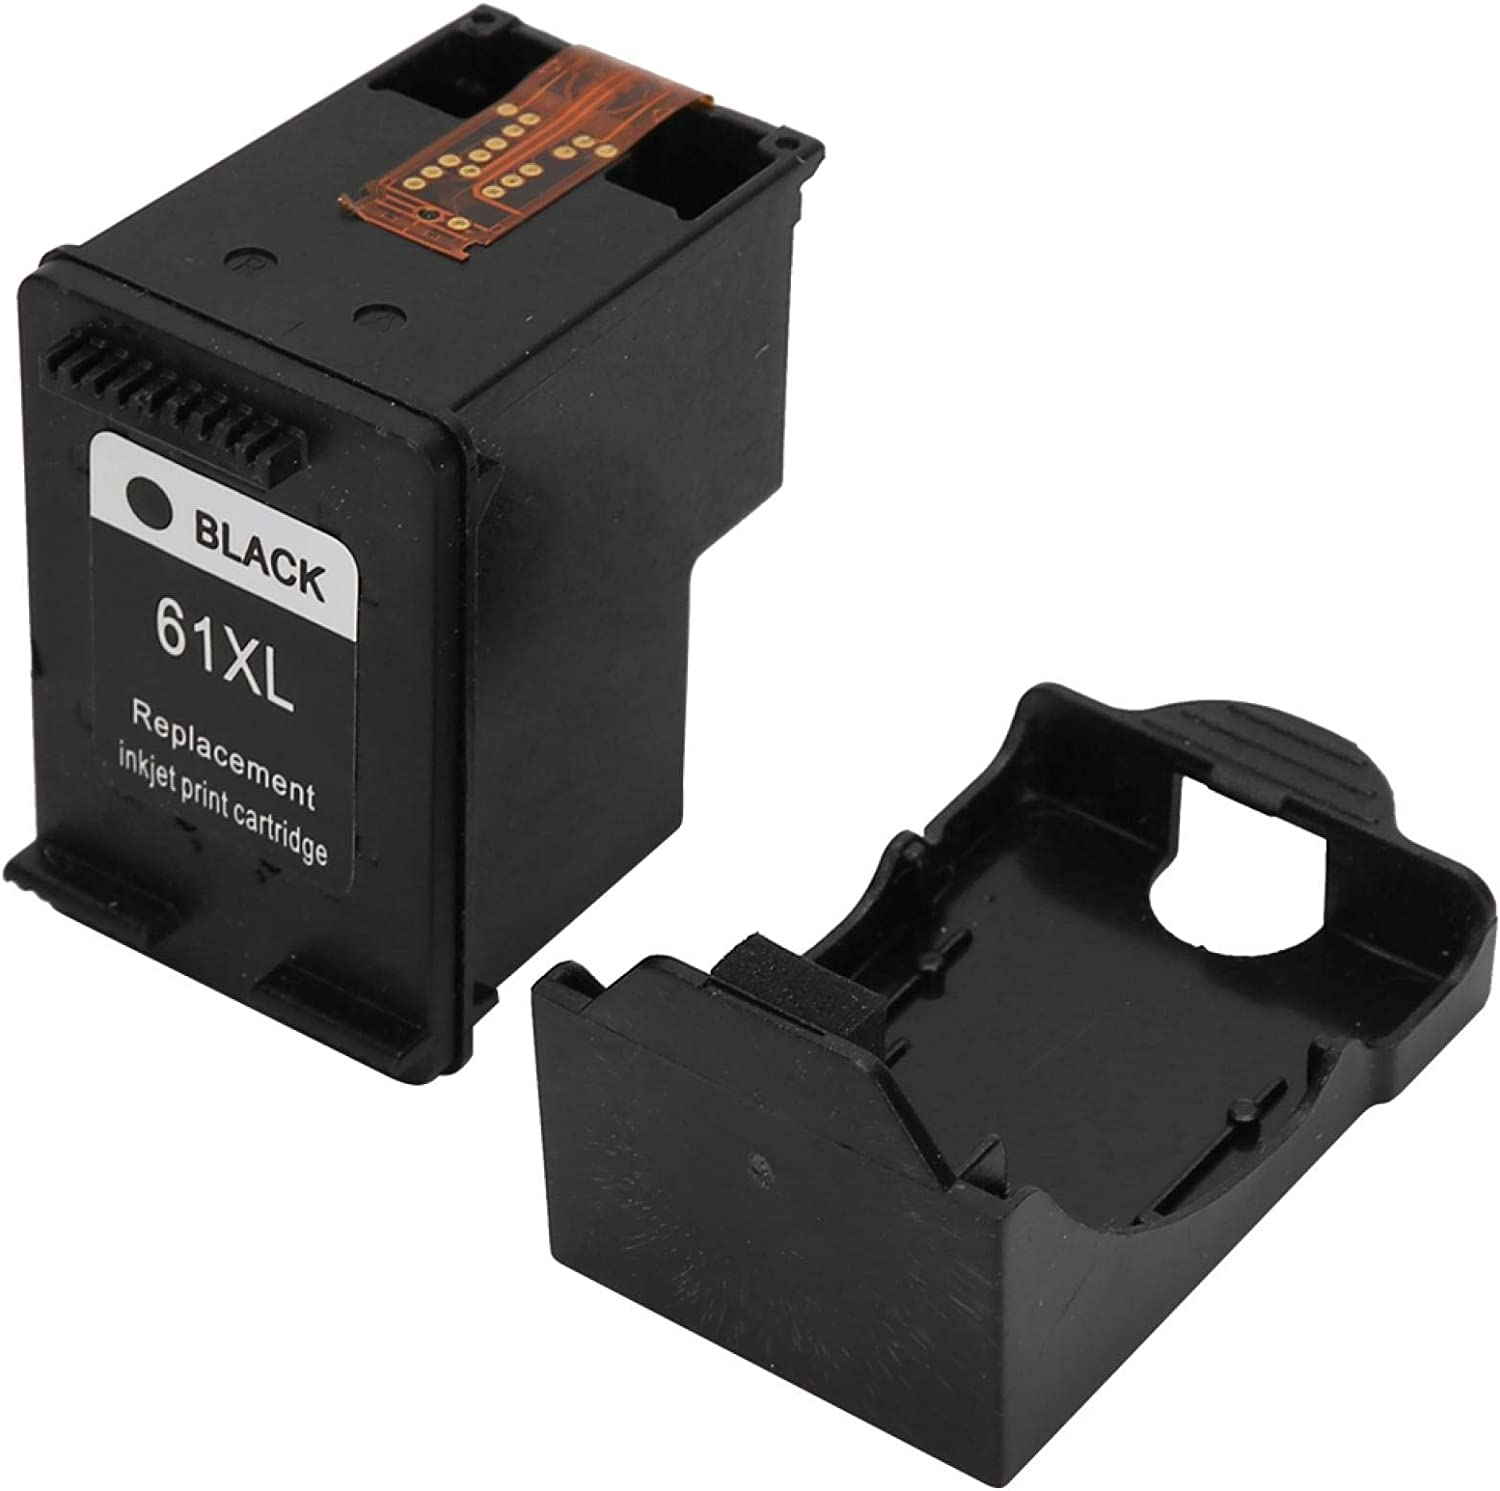 Printer Accessories Wear for Offices for HP61xl 1050(Black)